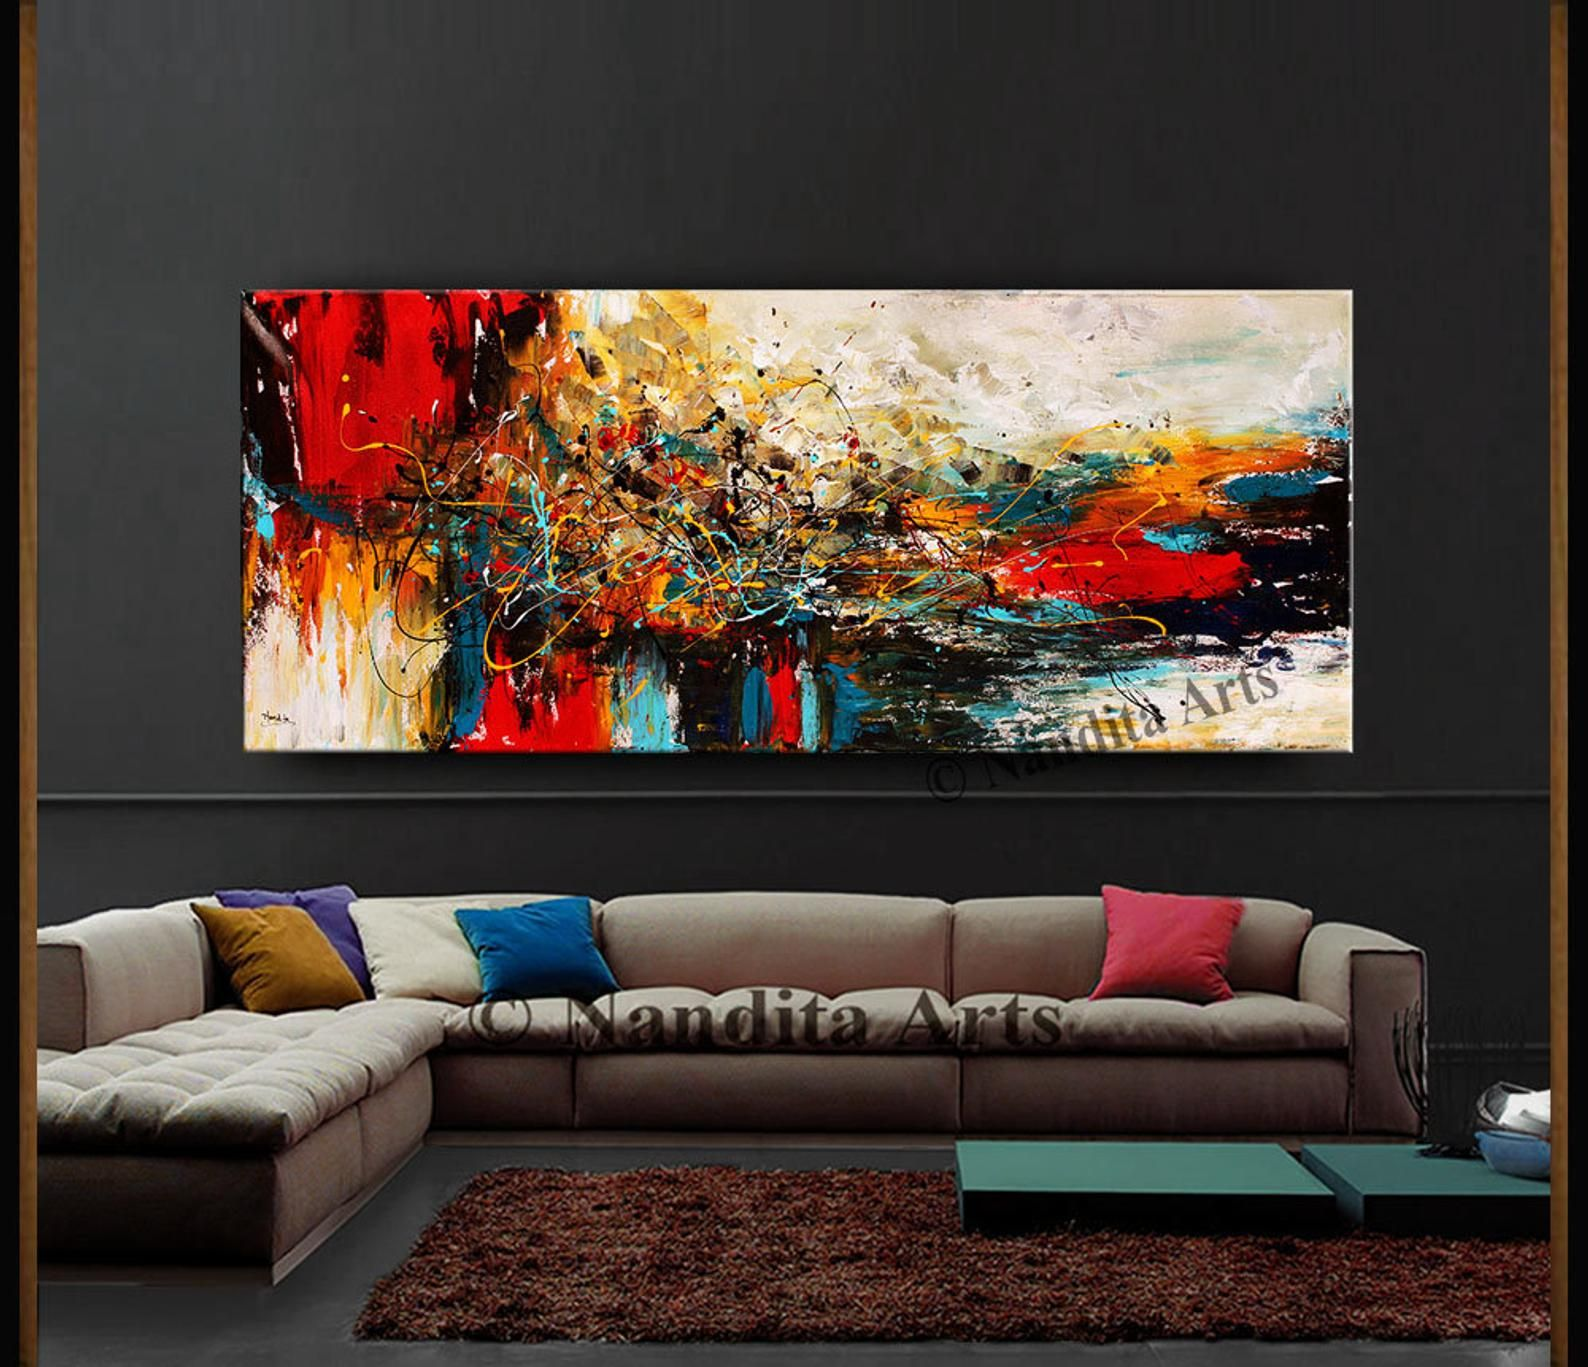 Oil Painting Acrylic Abstract Modern Art Red Original Painting Etsy In 2020 Modern Art Abstract Original Abstract Art Painting Modern Art Purple